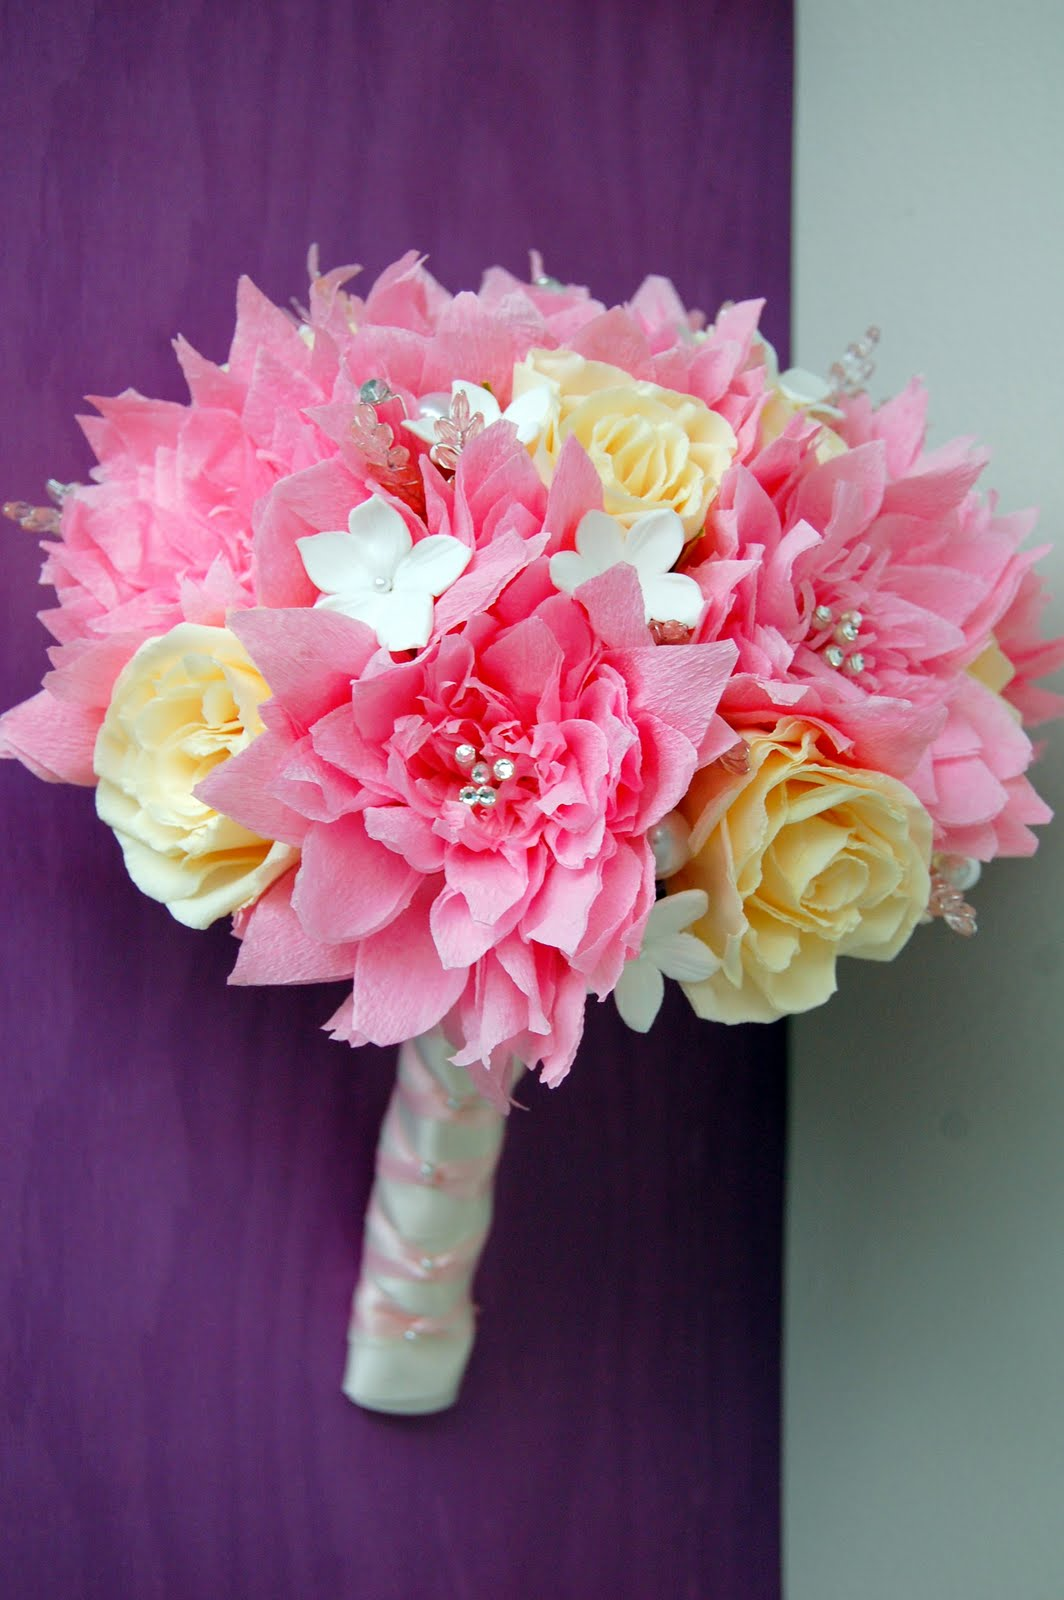 pink dahlia paper flower wedding bouquet handmade paper flowers by maria noble. Black Bedroom Furniture Sets. Home Design Ideas